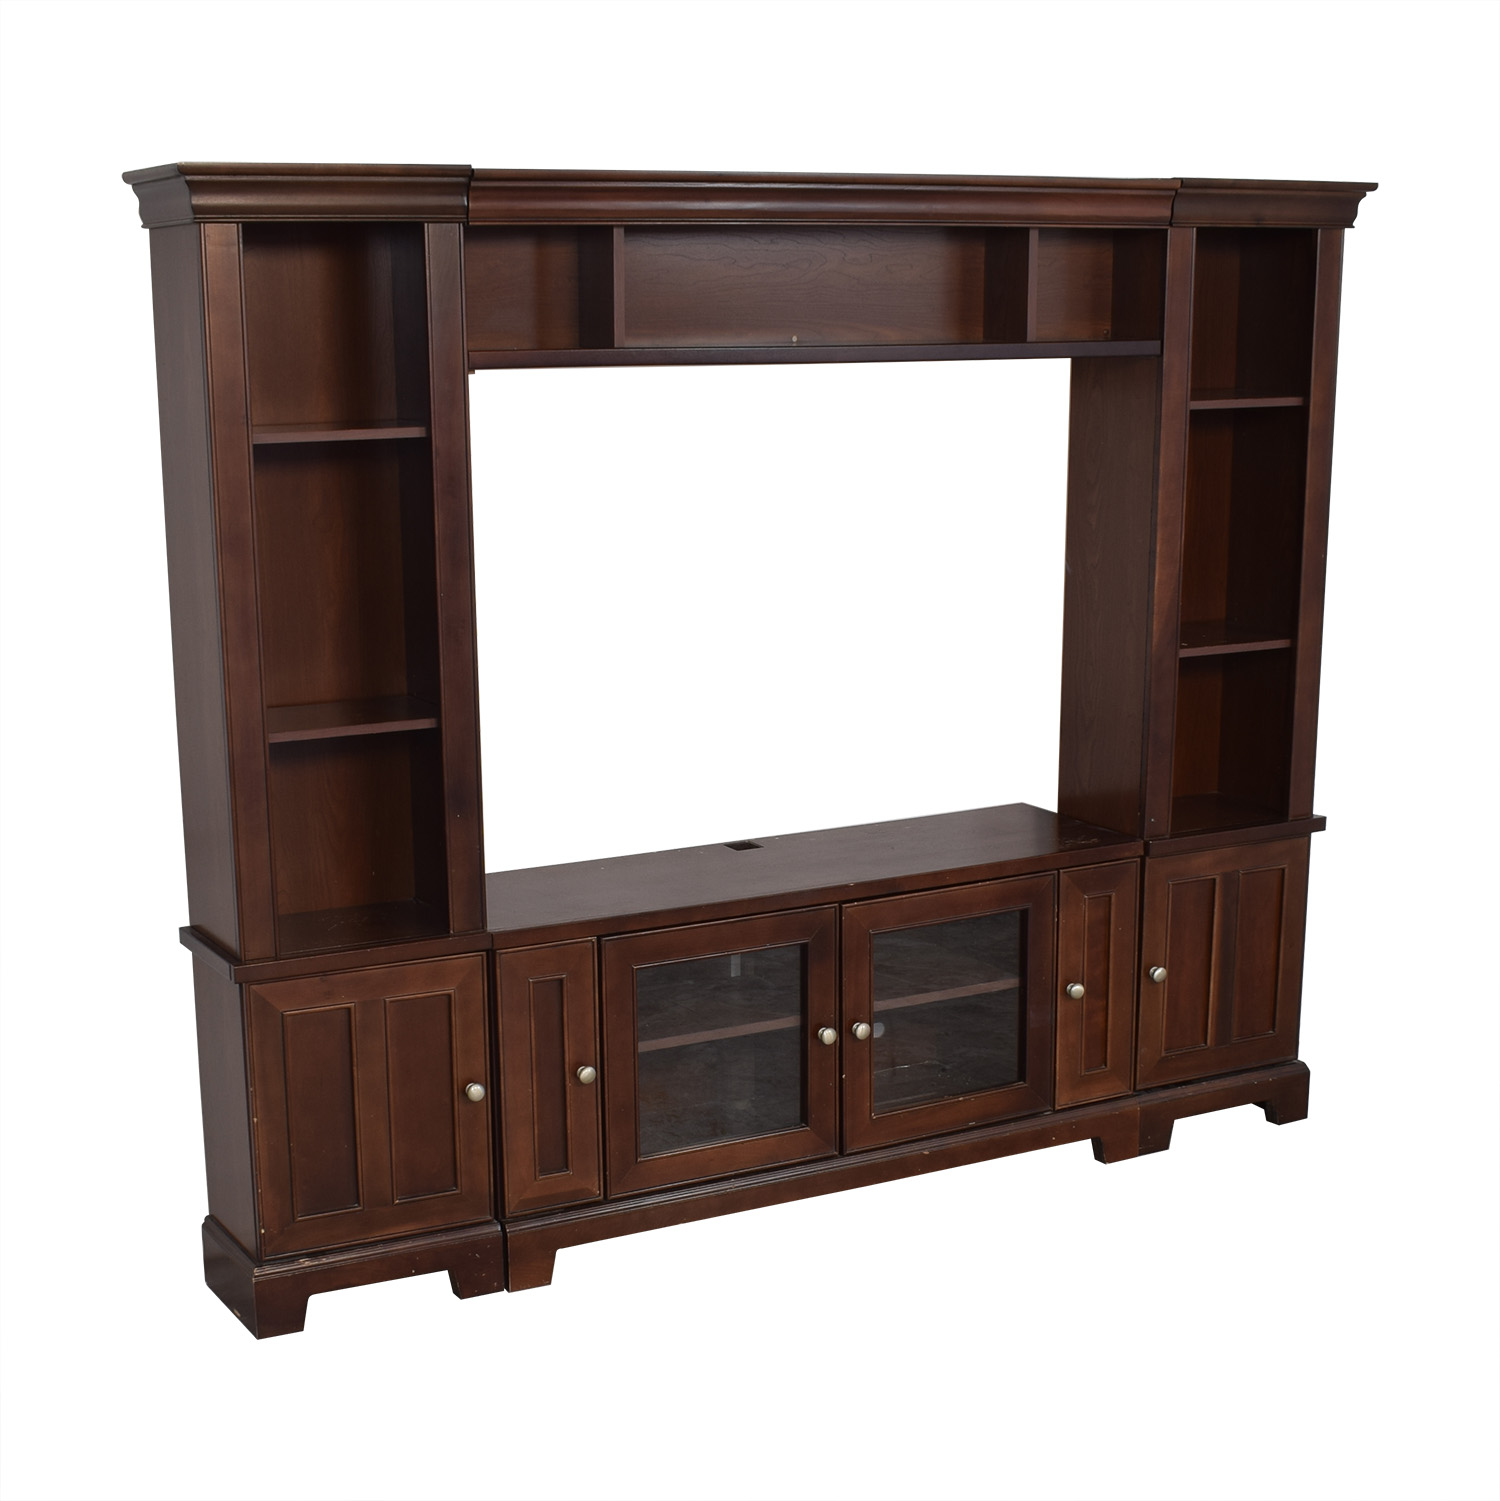 Entertainment Center with Cabinets dimensions